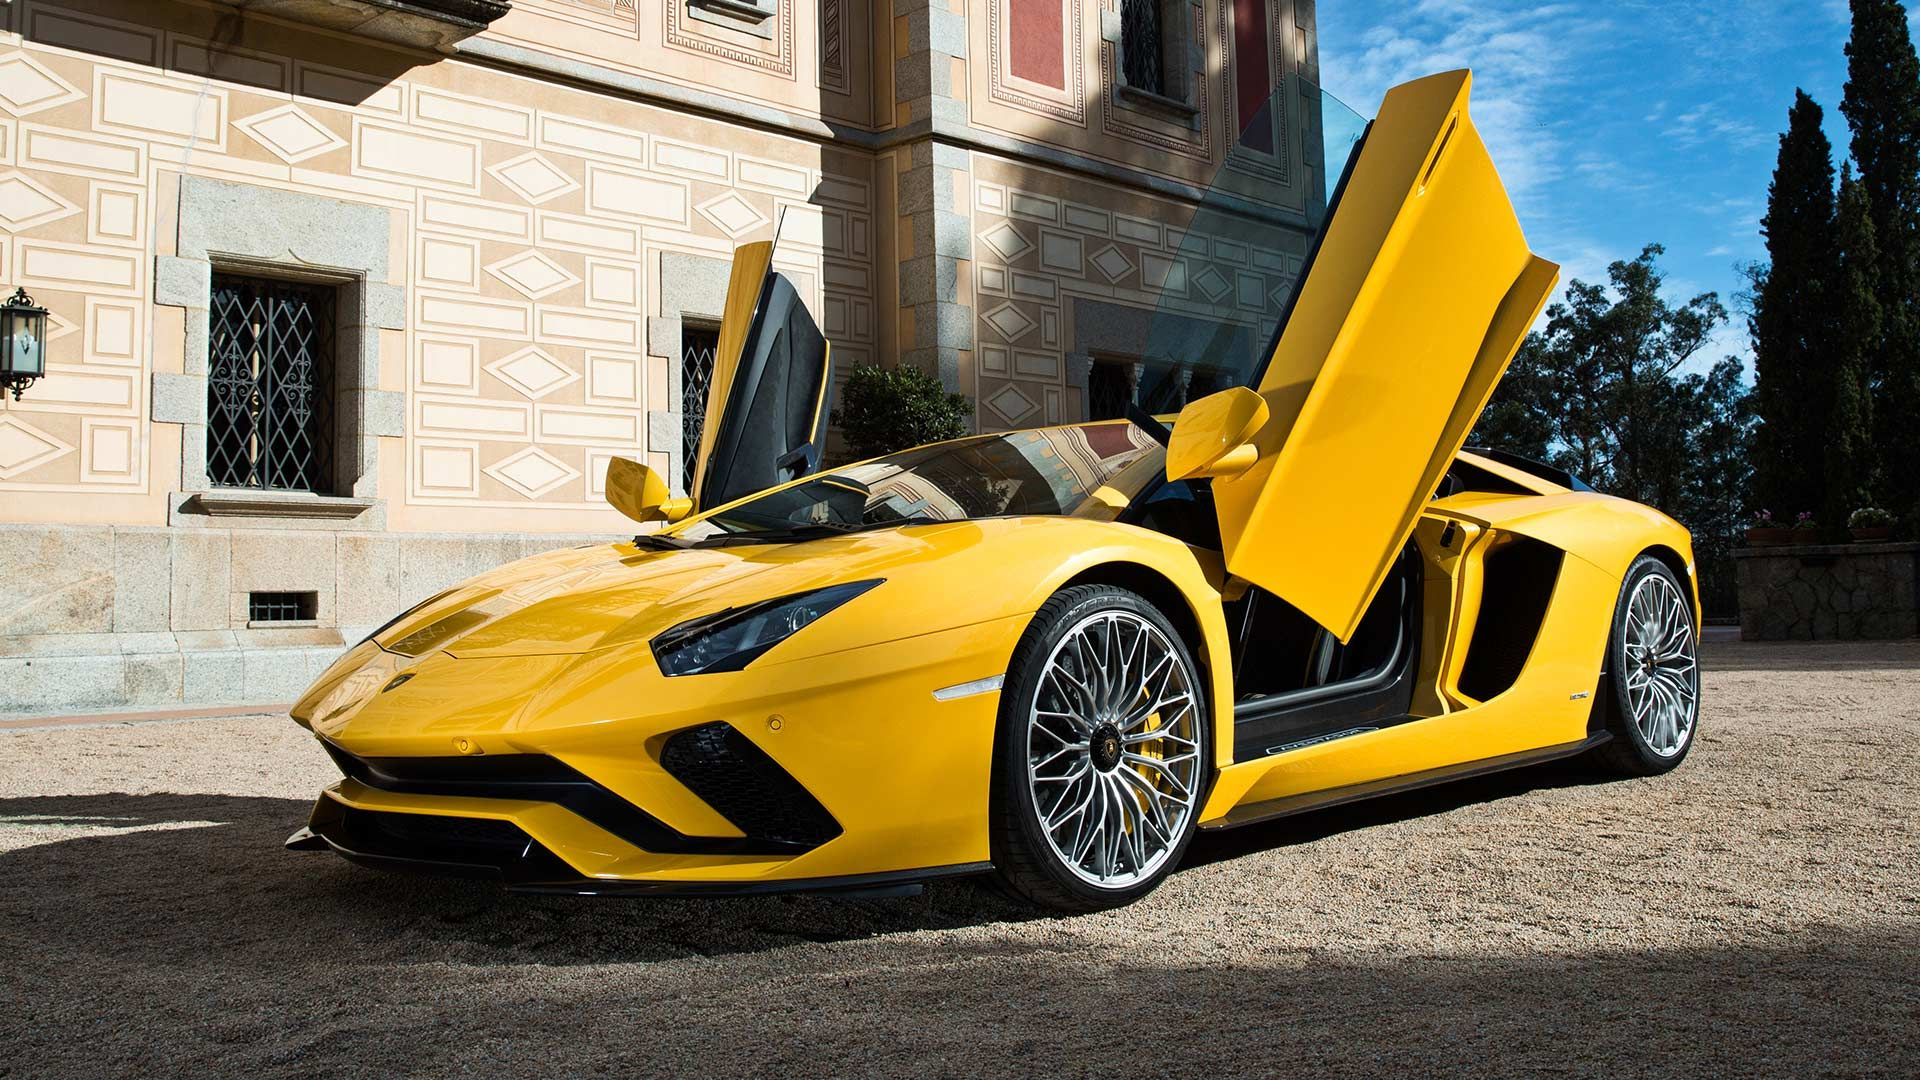 doors open versace lamborghini walldevil wallpaper